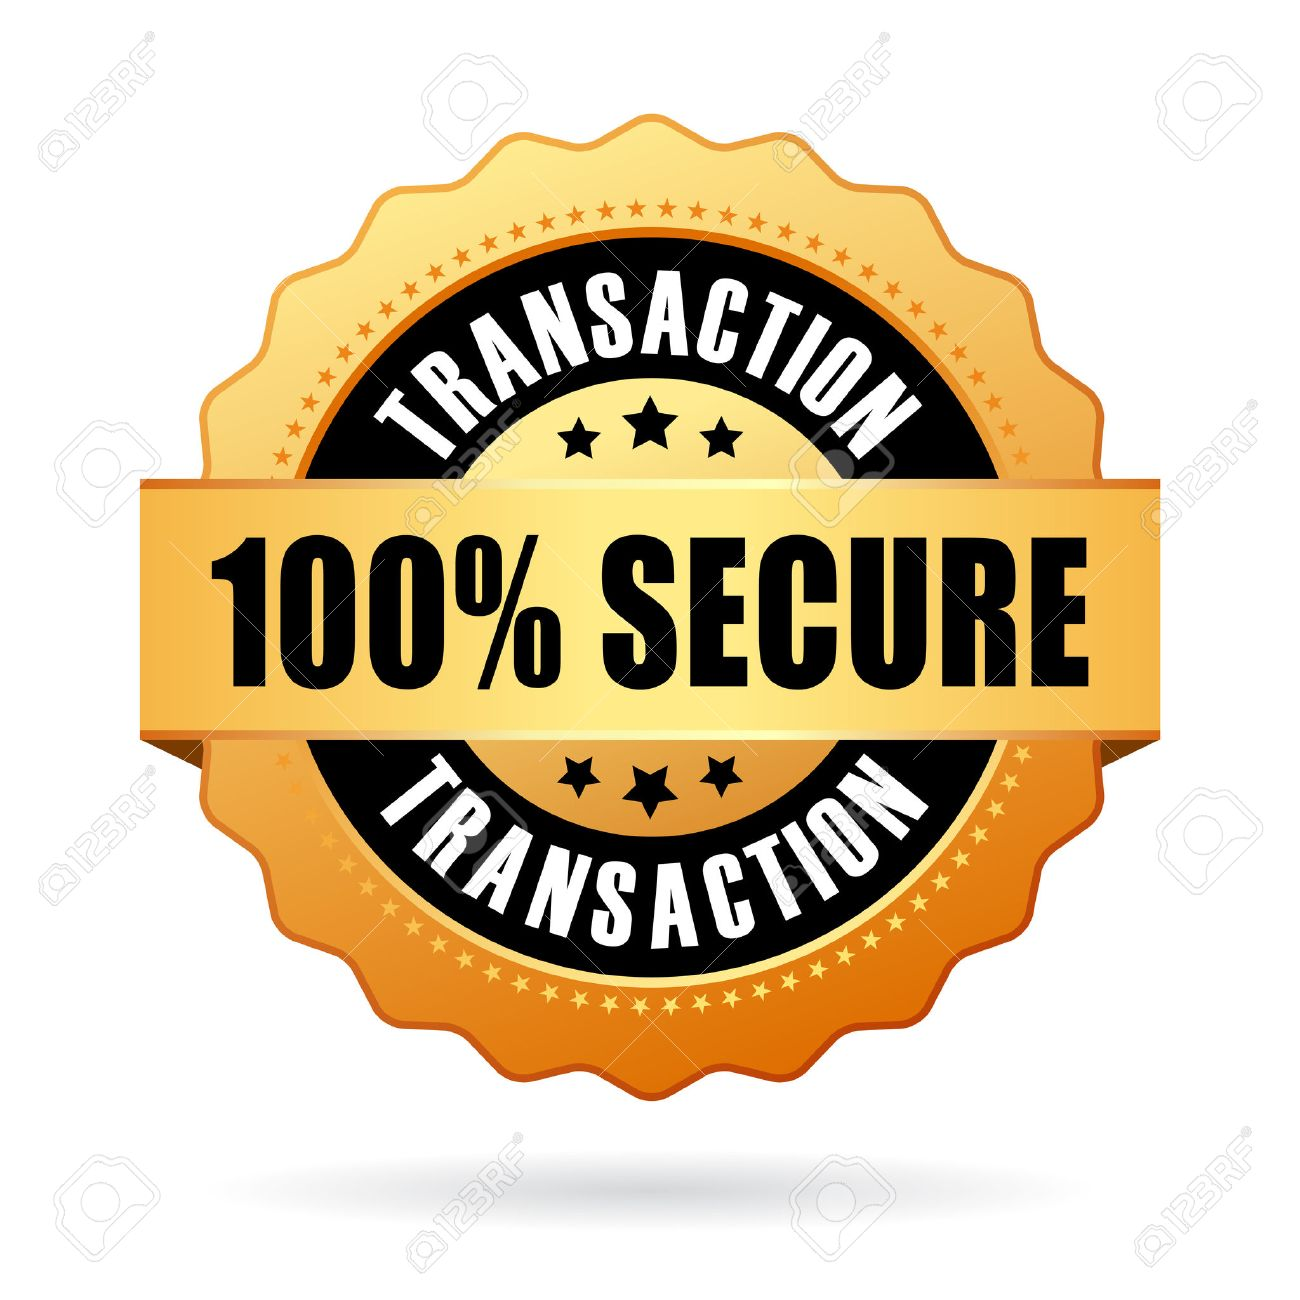 100 secure transaction icon - 44235069